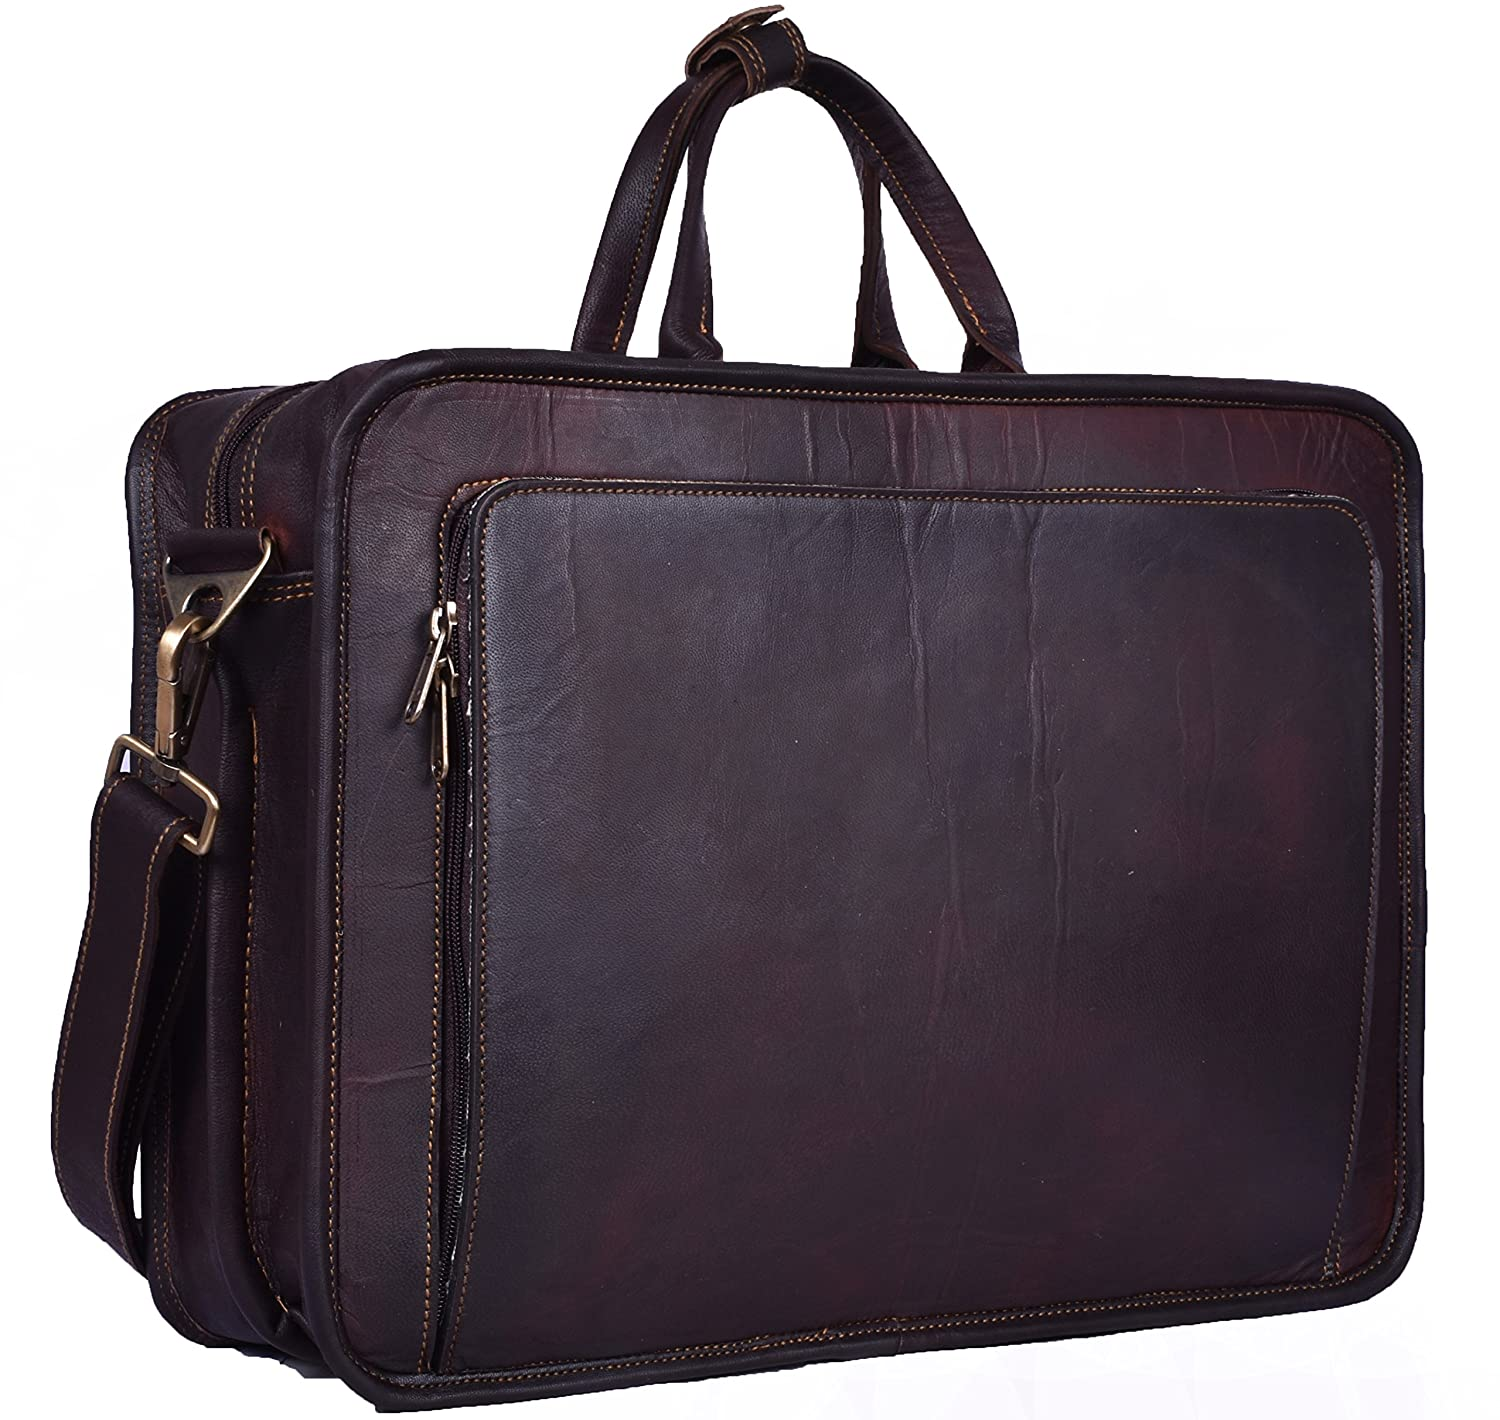 Handmade World Leather Messenger Bag - 16 Inch Briefcase Messenger Bag  Brown Leather with Crossbody Shoulder Strap - Great Messenger Bag for  Laptops 0e8be6aa62749